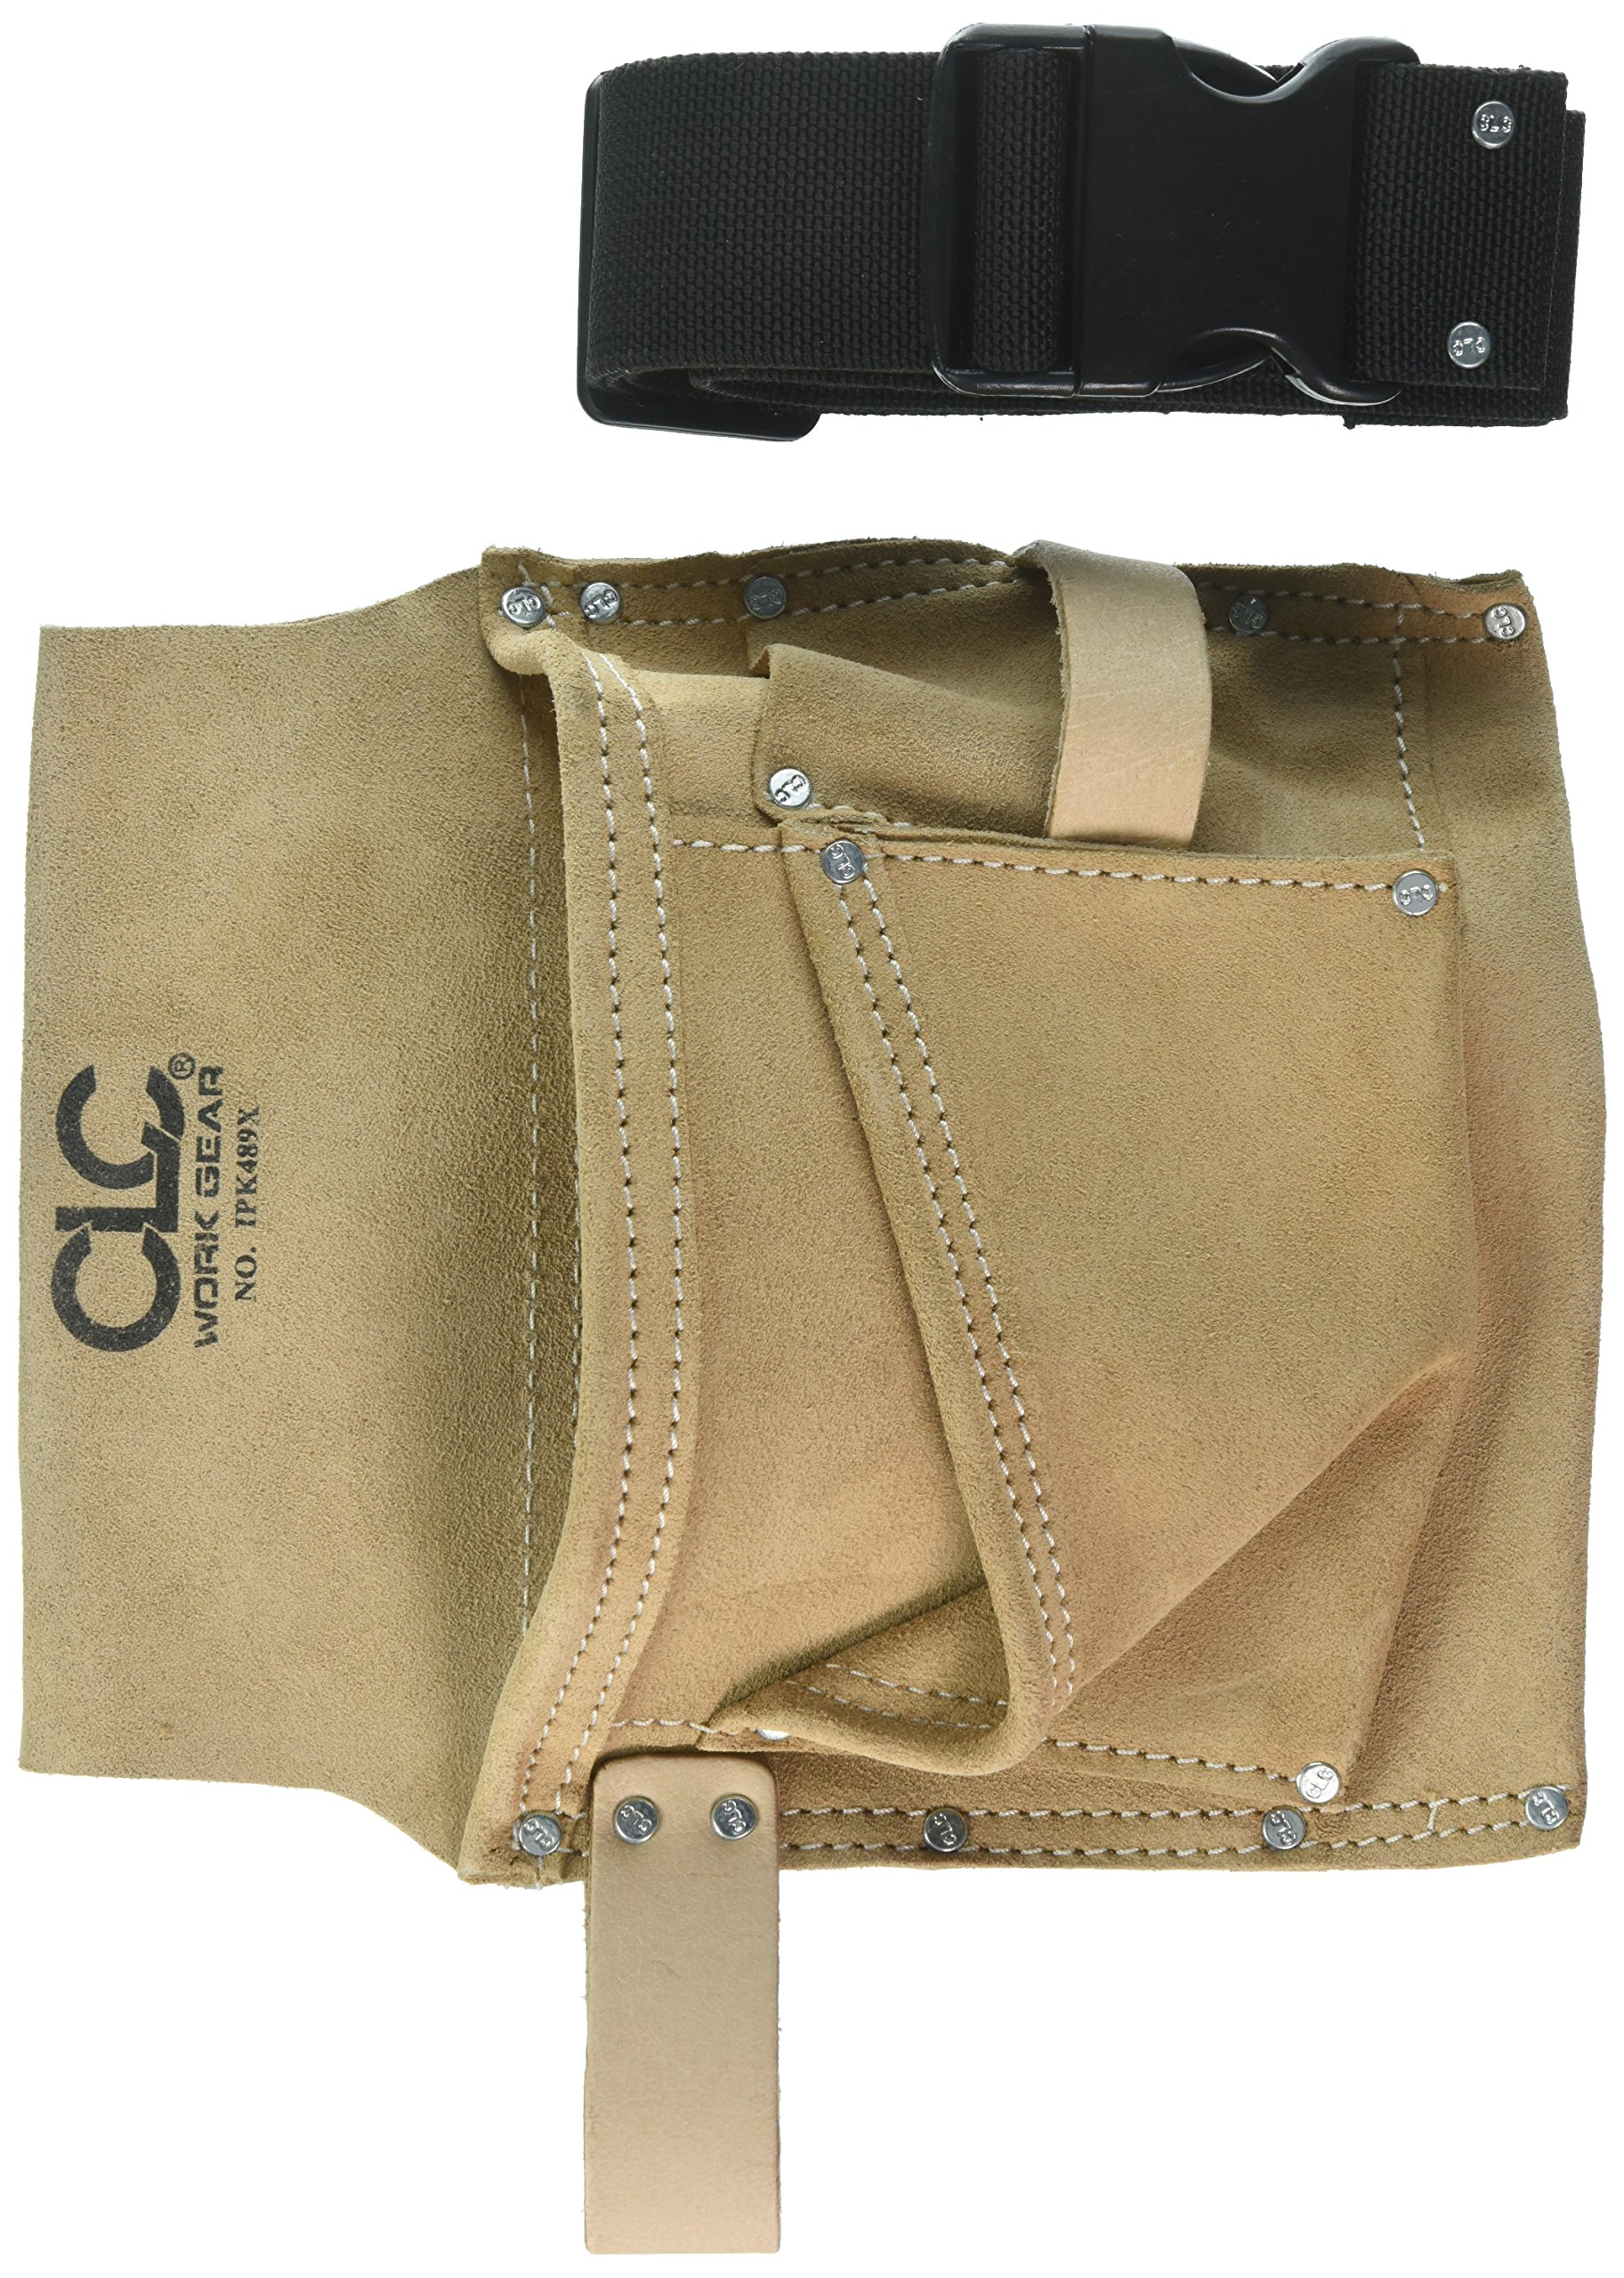 CLC Work Gear IP489X 3 Pocket Nail & Tool Bag With Polyweb Belt by Custom Leathercraft (Image #1)